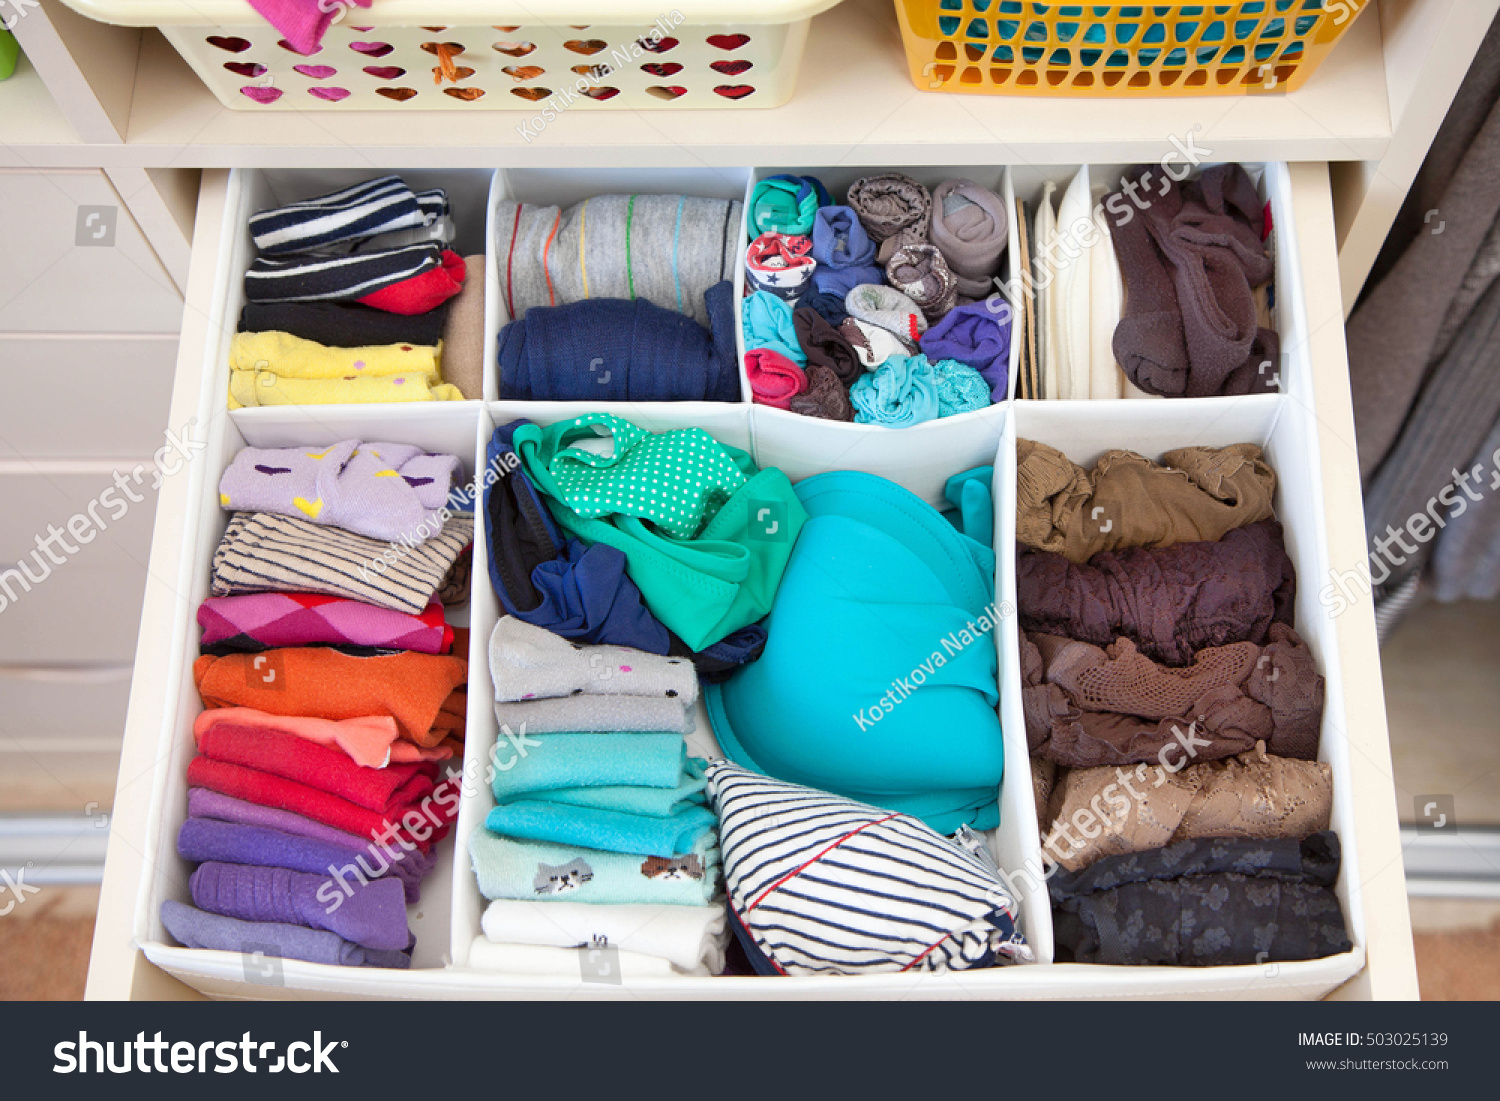 Womenu0027s Clothing In The Drawers Of The Wardrobe. Underwear, T Shirts And  Socks